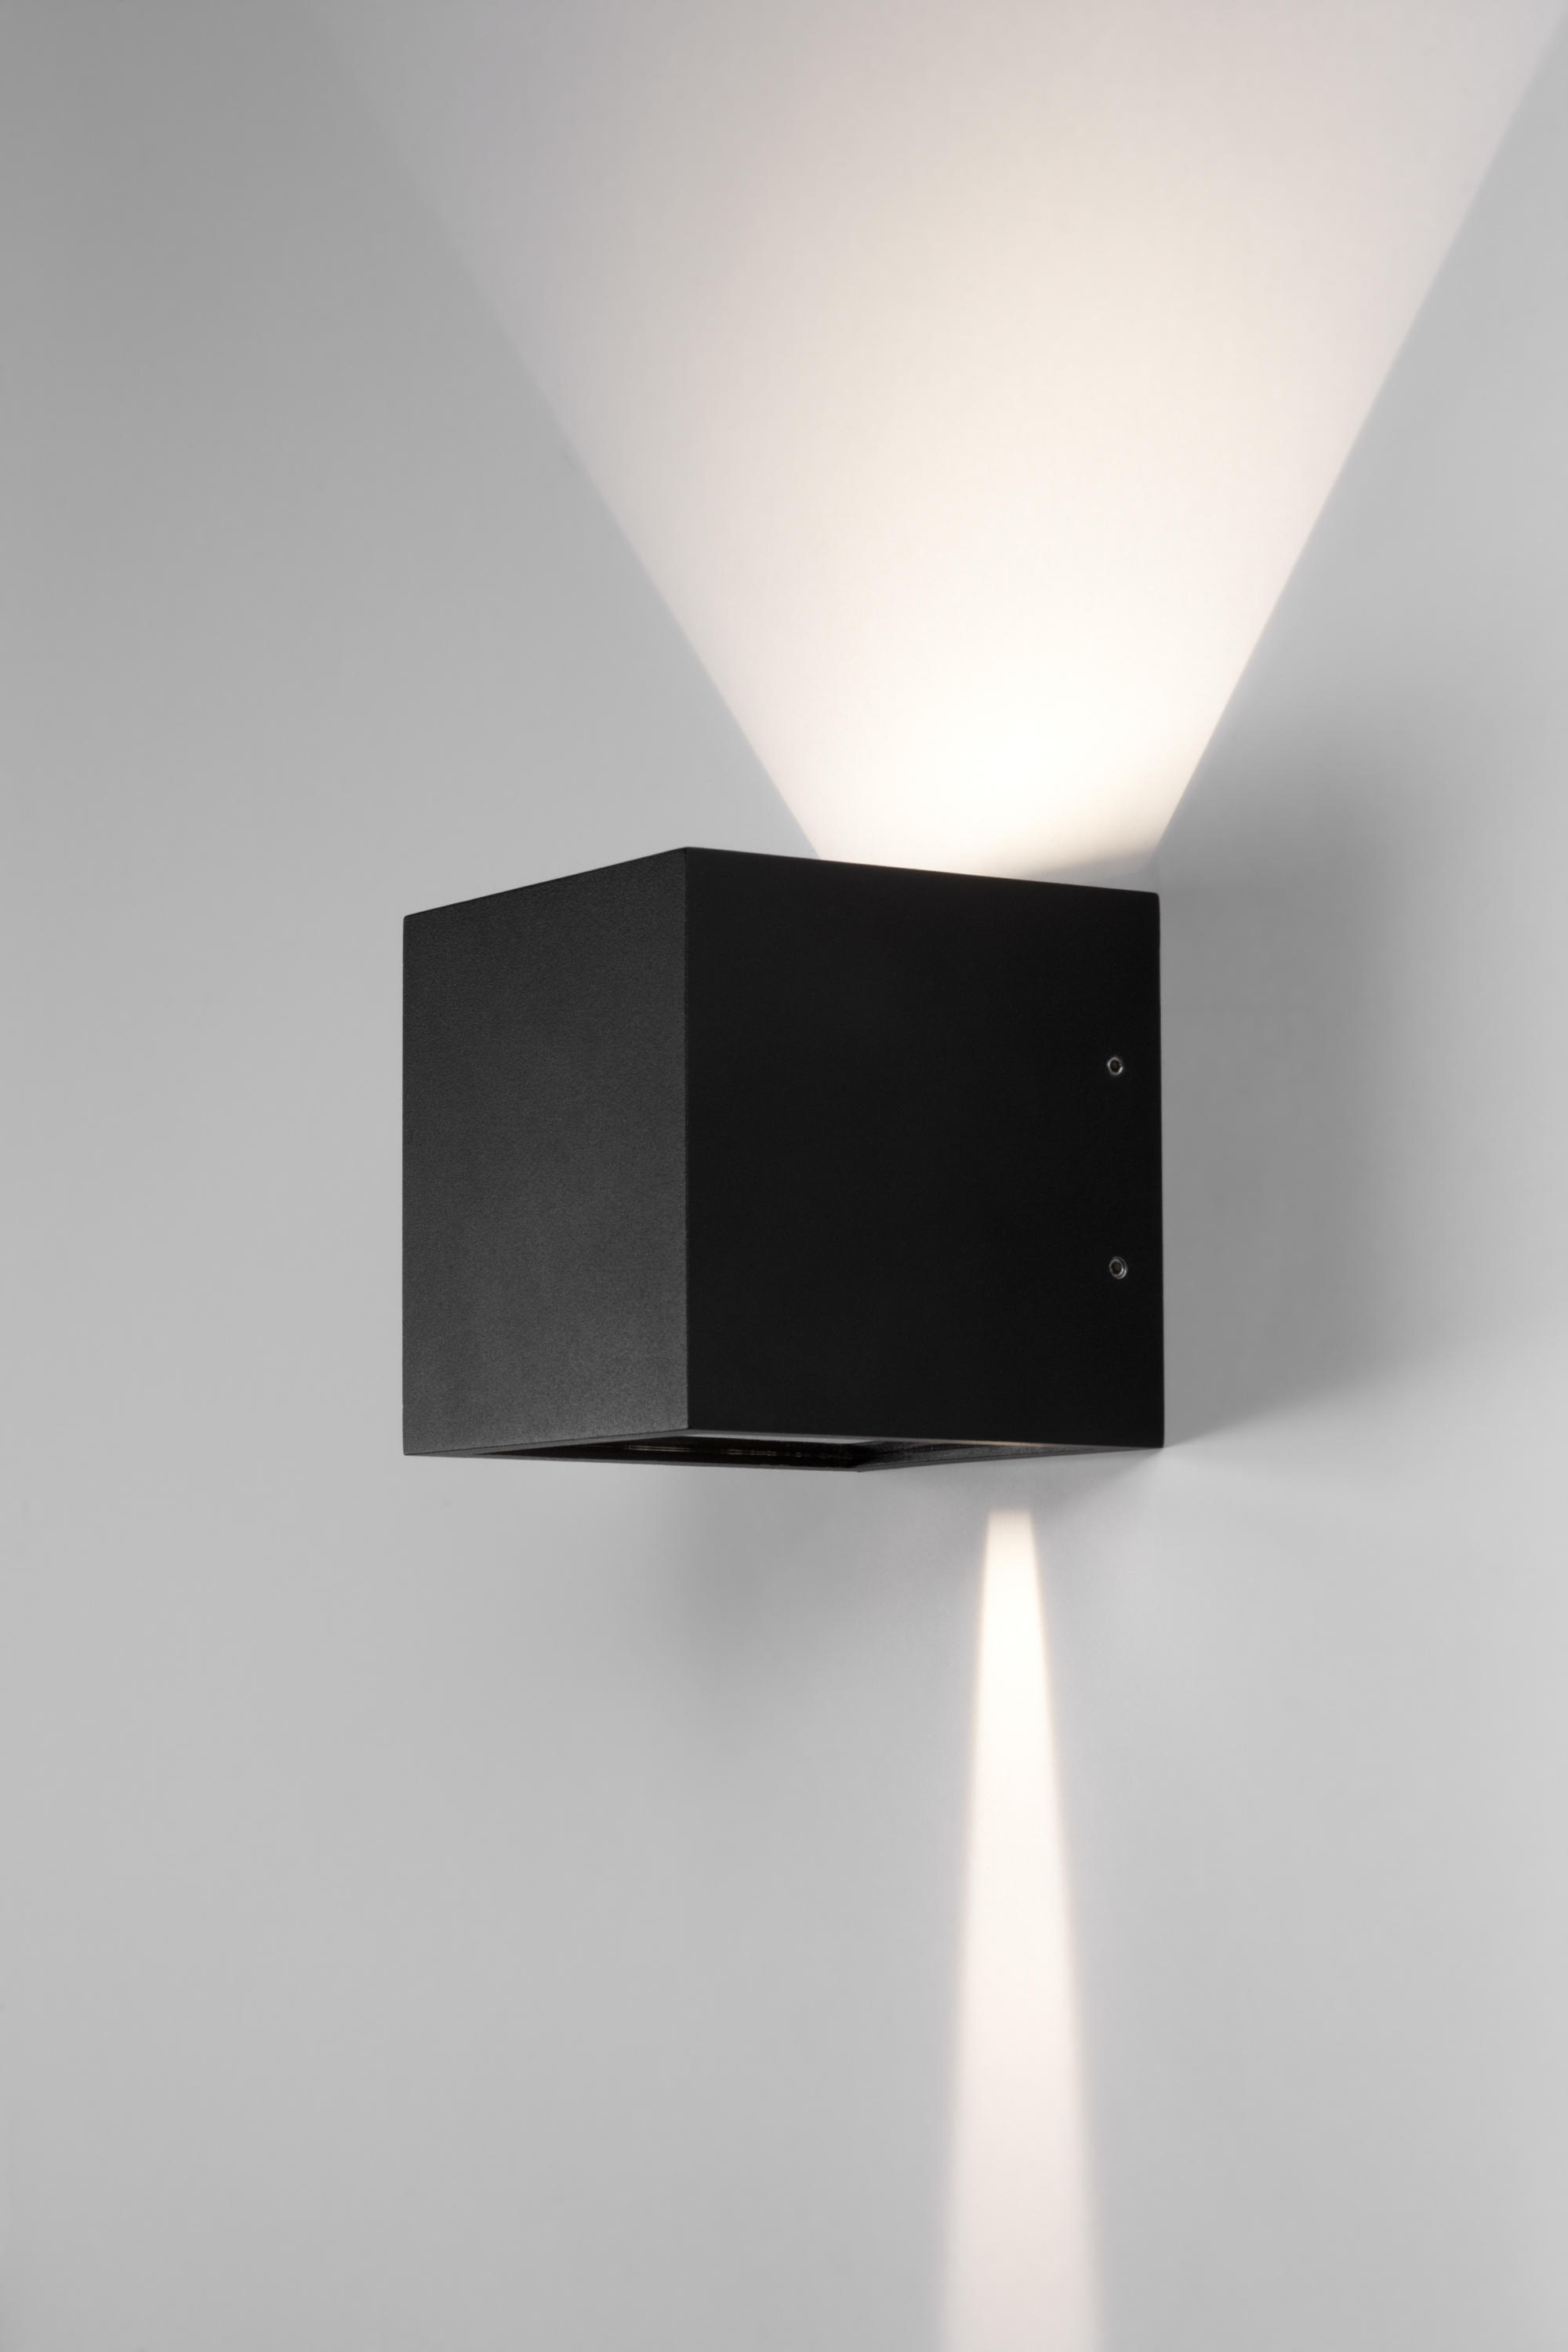 Cube led wall mounted spotlights from light point architonic cube led by light point wall mounted spotlights aloadofball Image collections